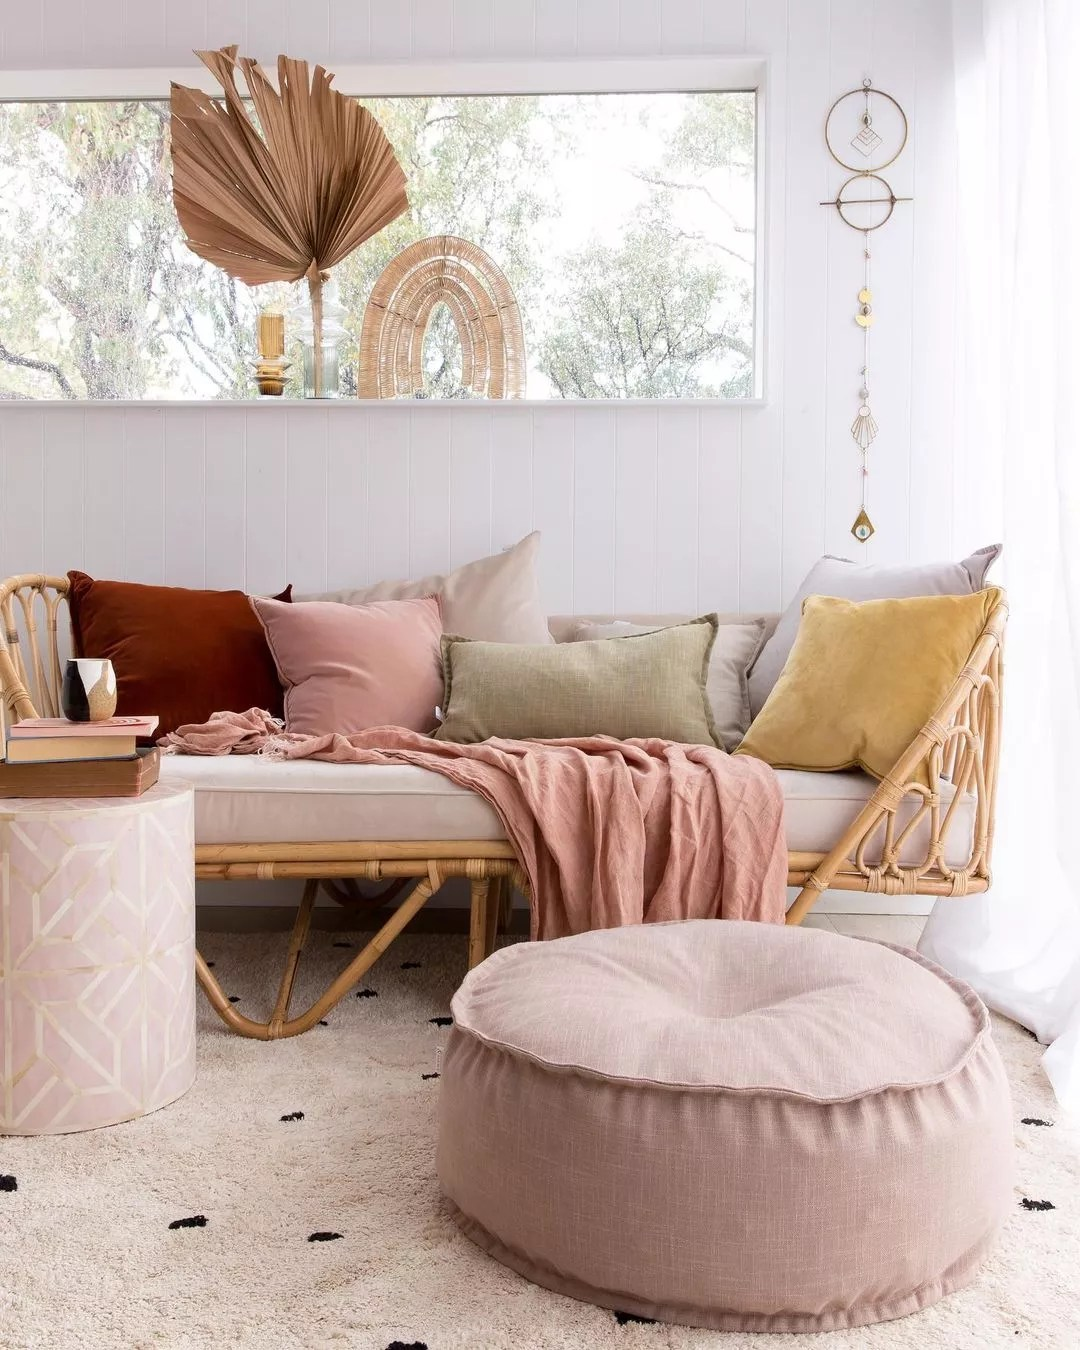 Short daybed in a bamboo frame as a sofa, a light pink pouf across it helps tie the room together as a warm neutral color. Photo by Instagram user @onyxandsmoke.